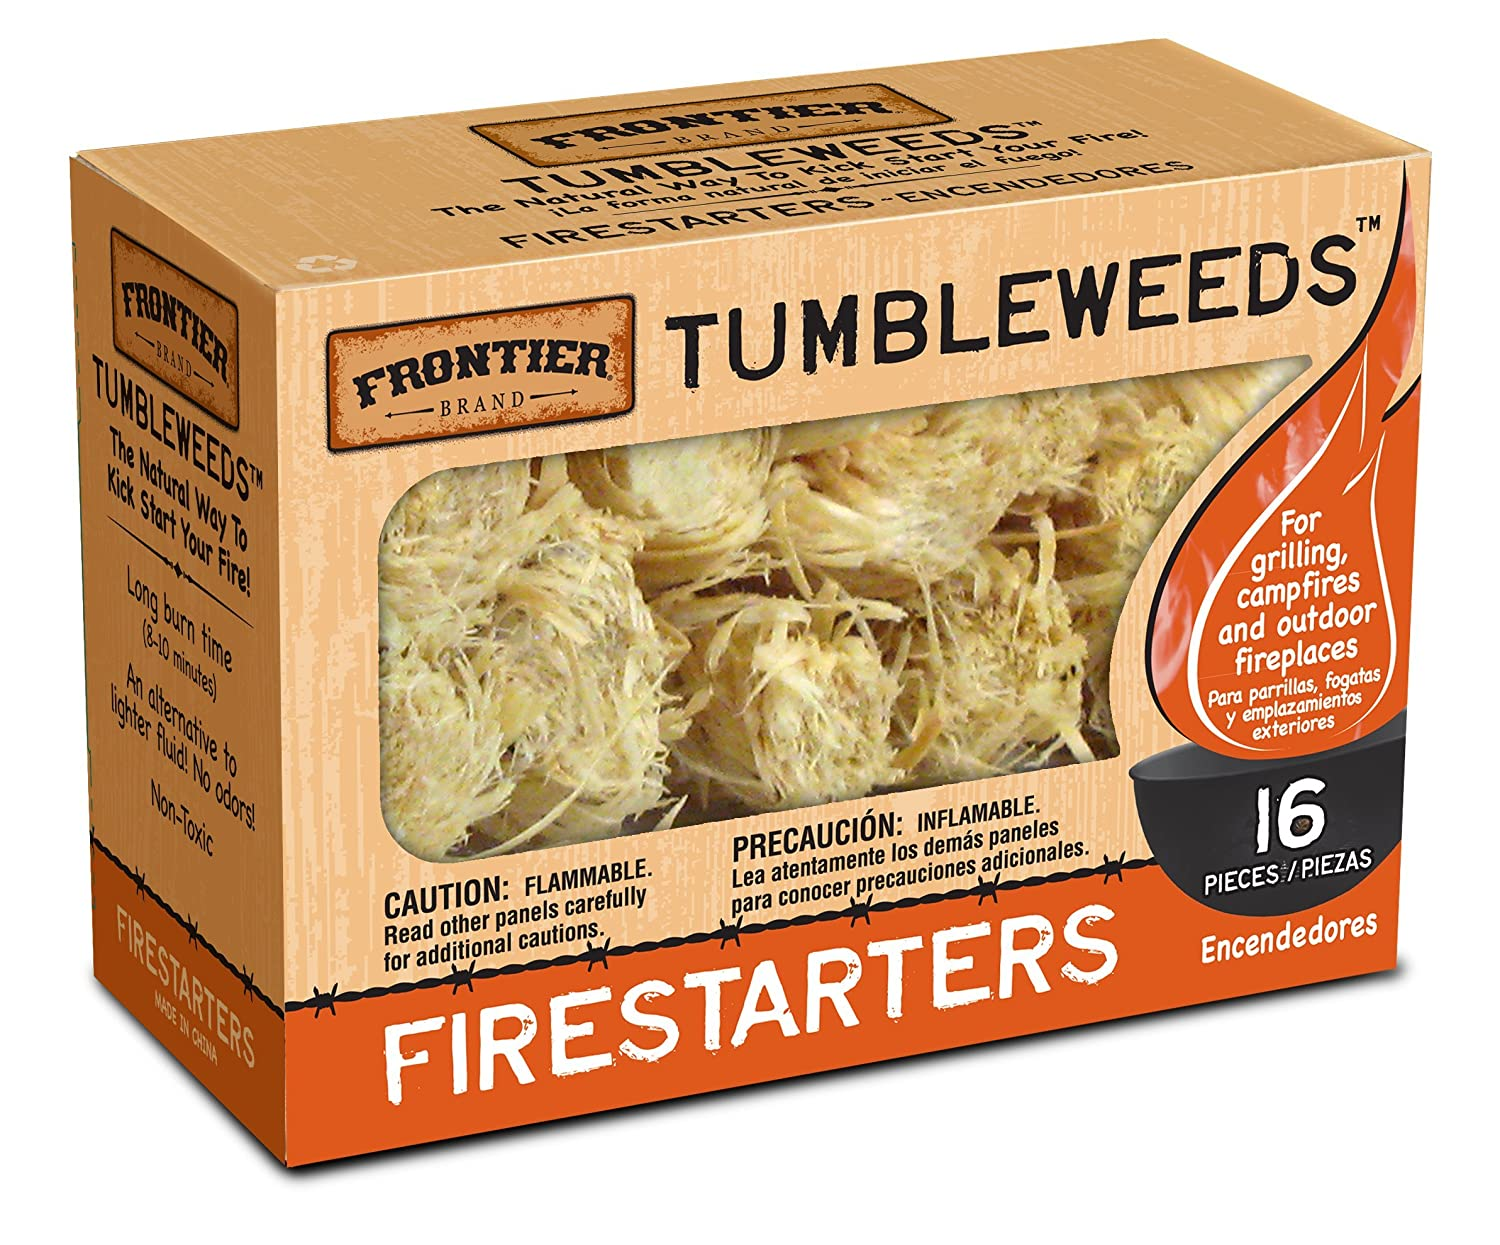 Frontier Tumbleweeds Natural Firestarters 1 box of 16 Packaging Service Co Inc Nhs XFTT16